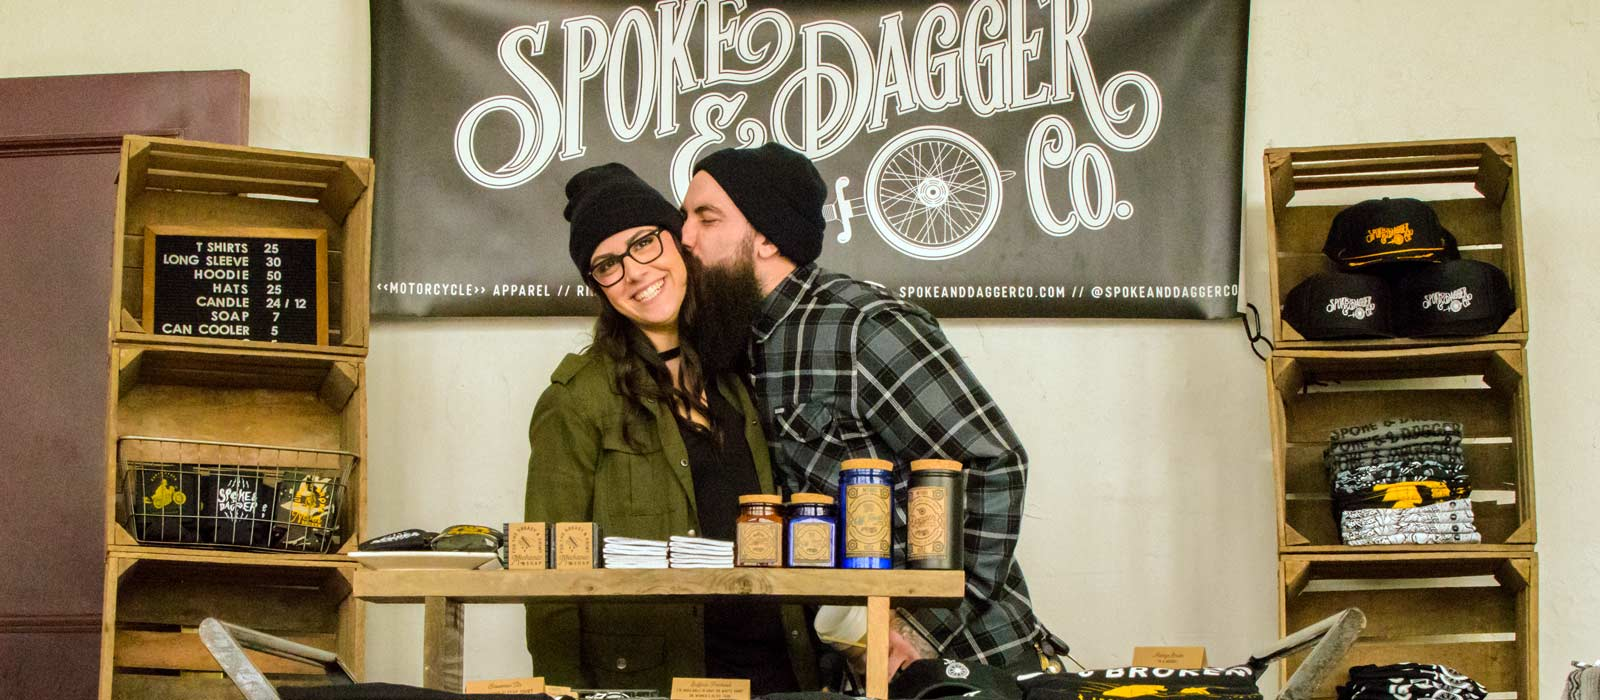 MMI grad Chris Drew and his wife grand opening of Spoke and Dagger in Buffalo New York